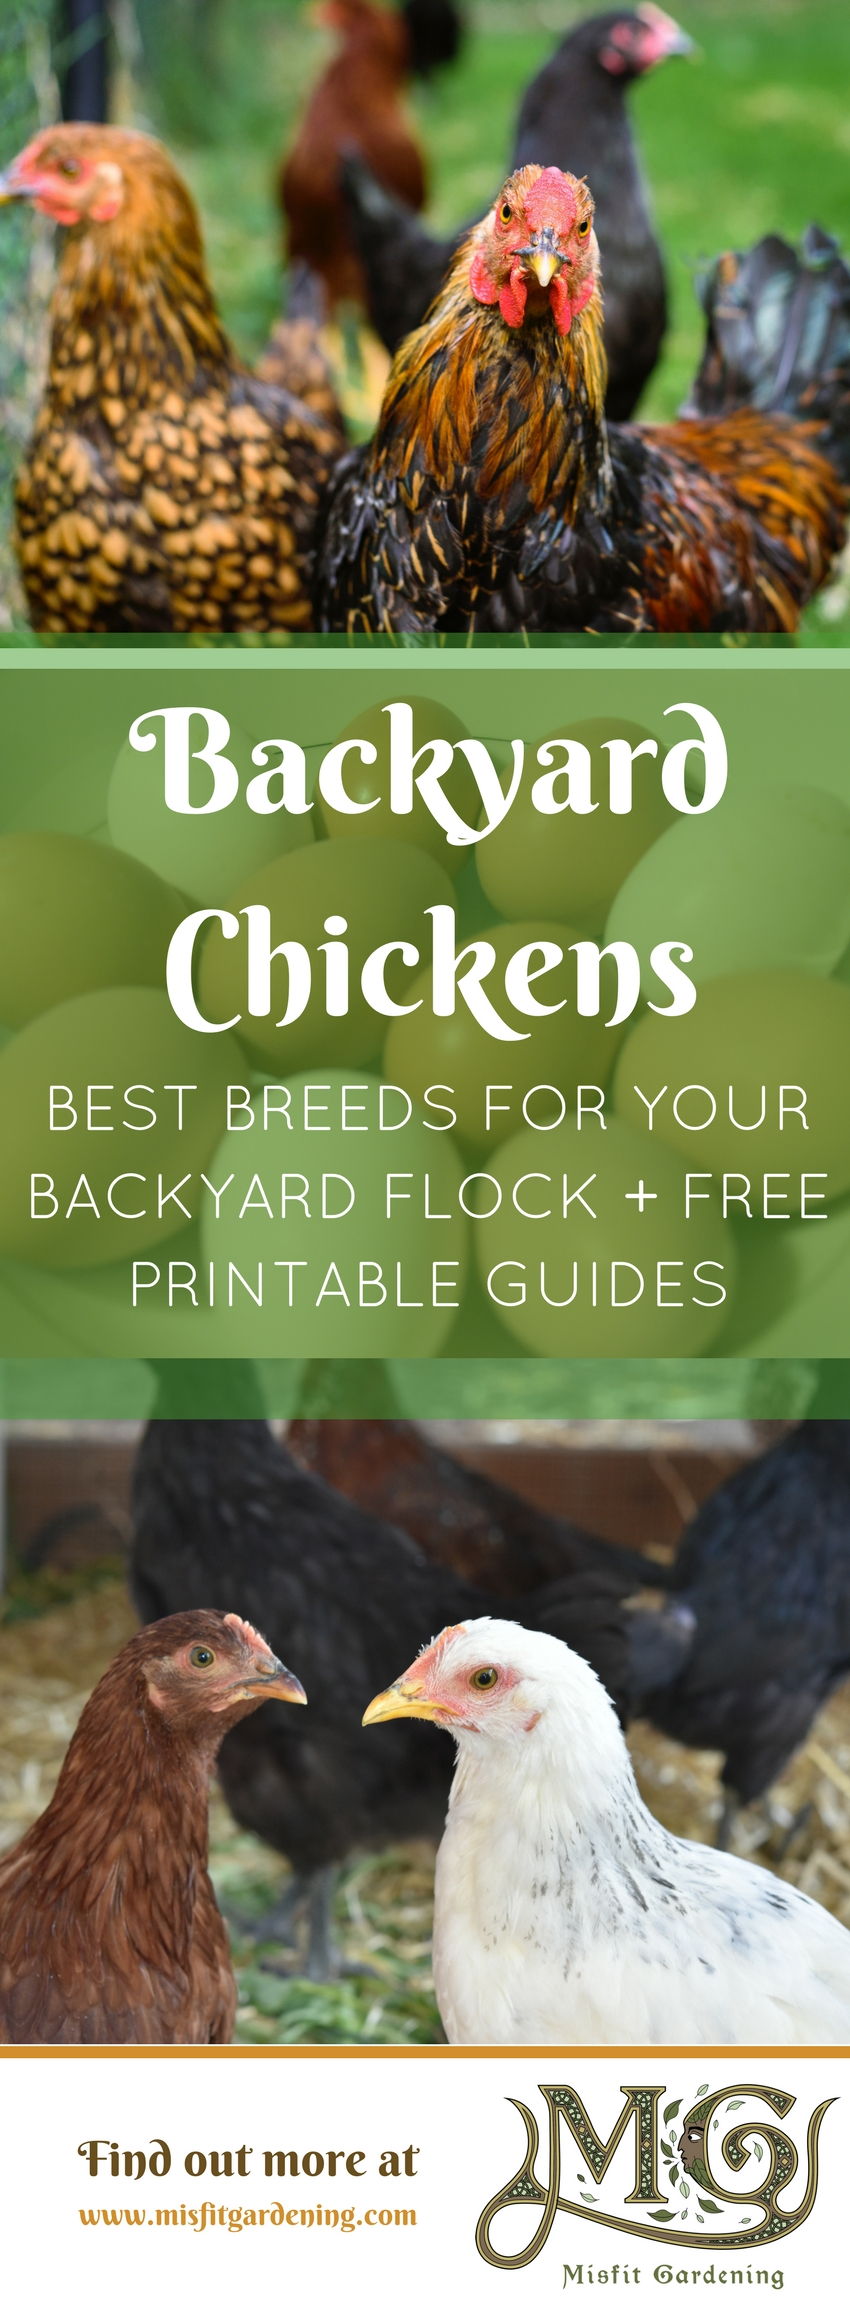 Best backyard chicken breeds for suburban homesteads. Click to learn more  or pin it for - Best Backyard Chicken Breeds For Suburban Homesteads - Misfit Gardening